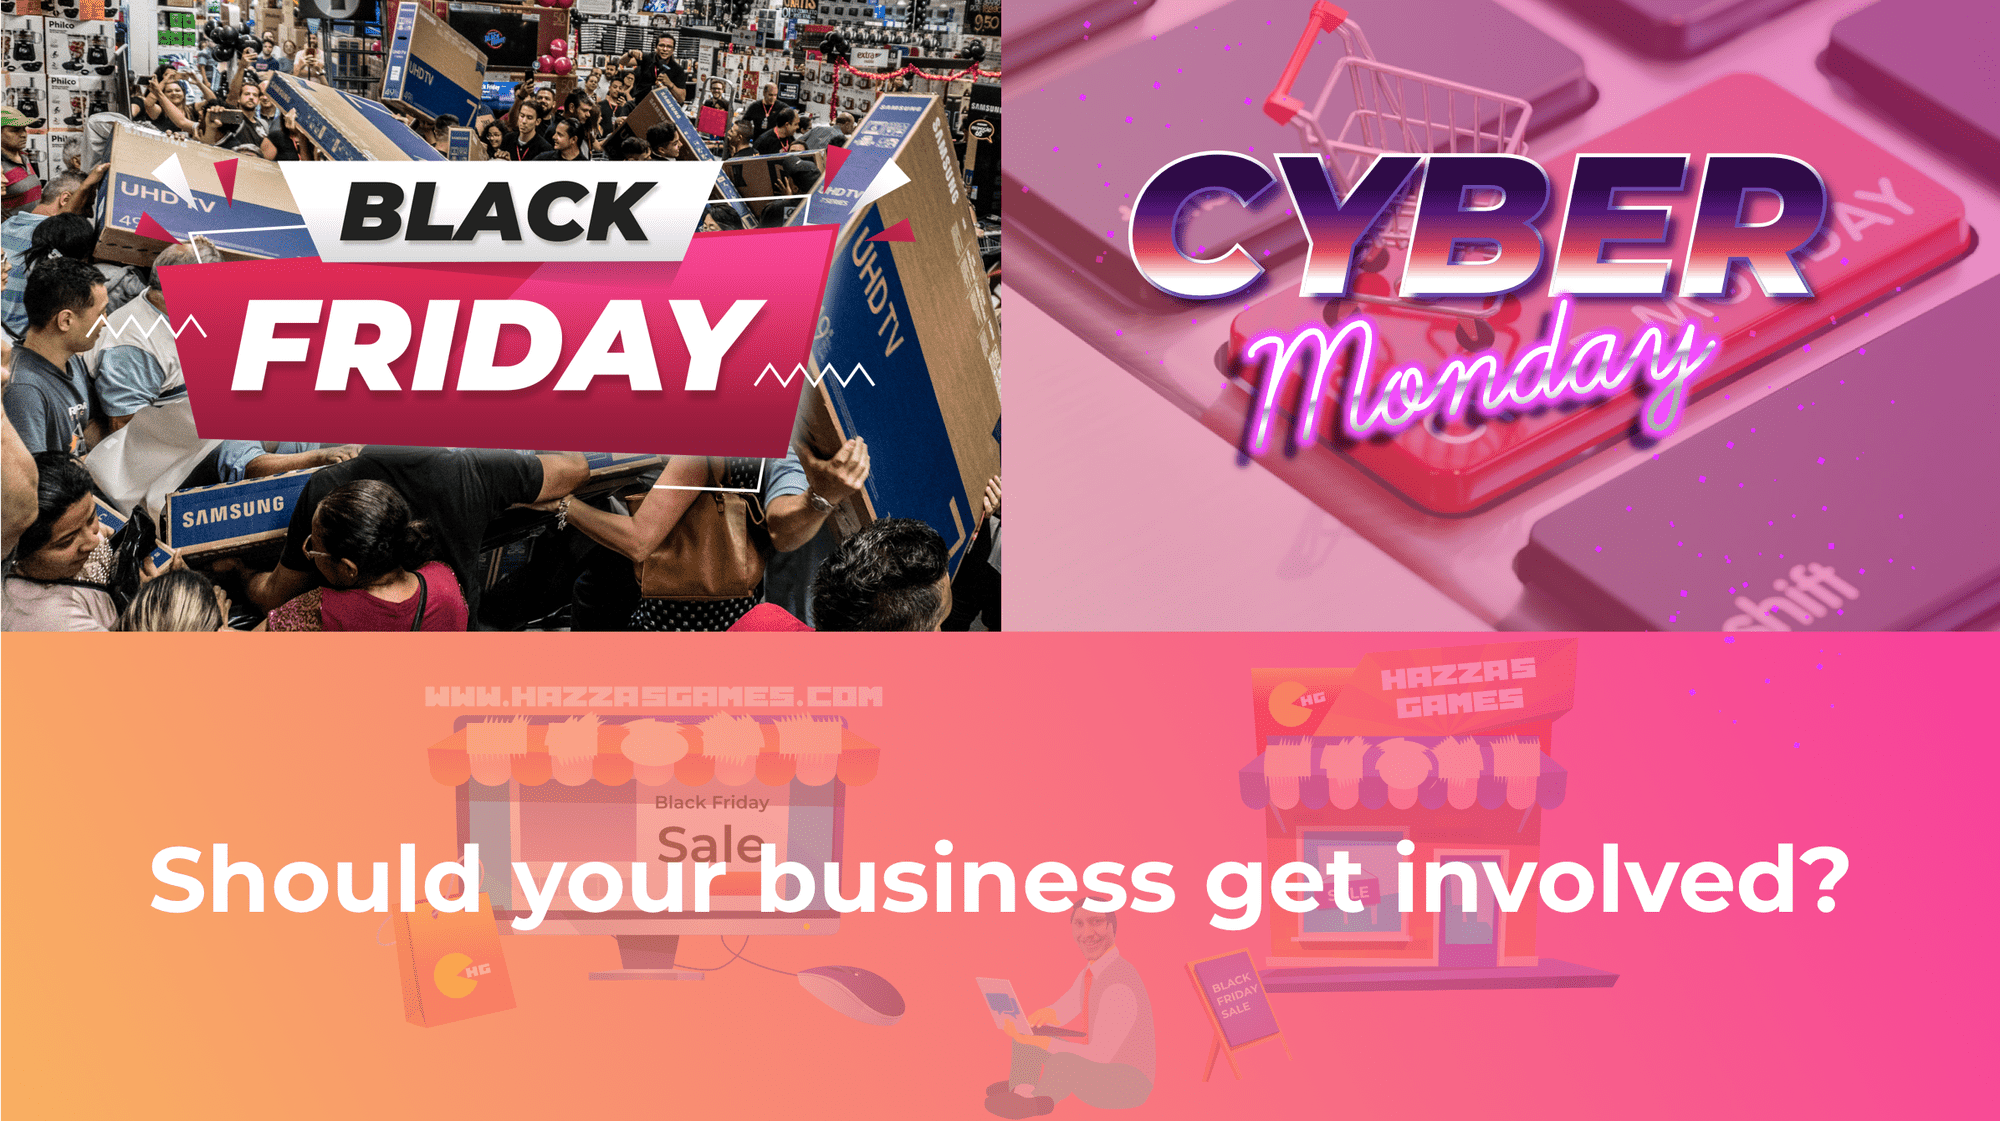 Should Your Business Get Involved In Black Friday/Cyber Monday?